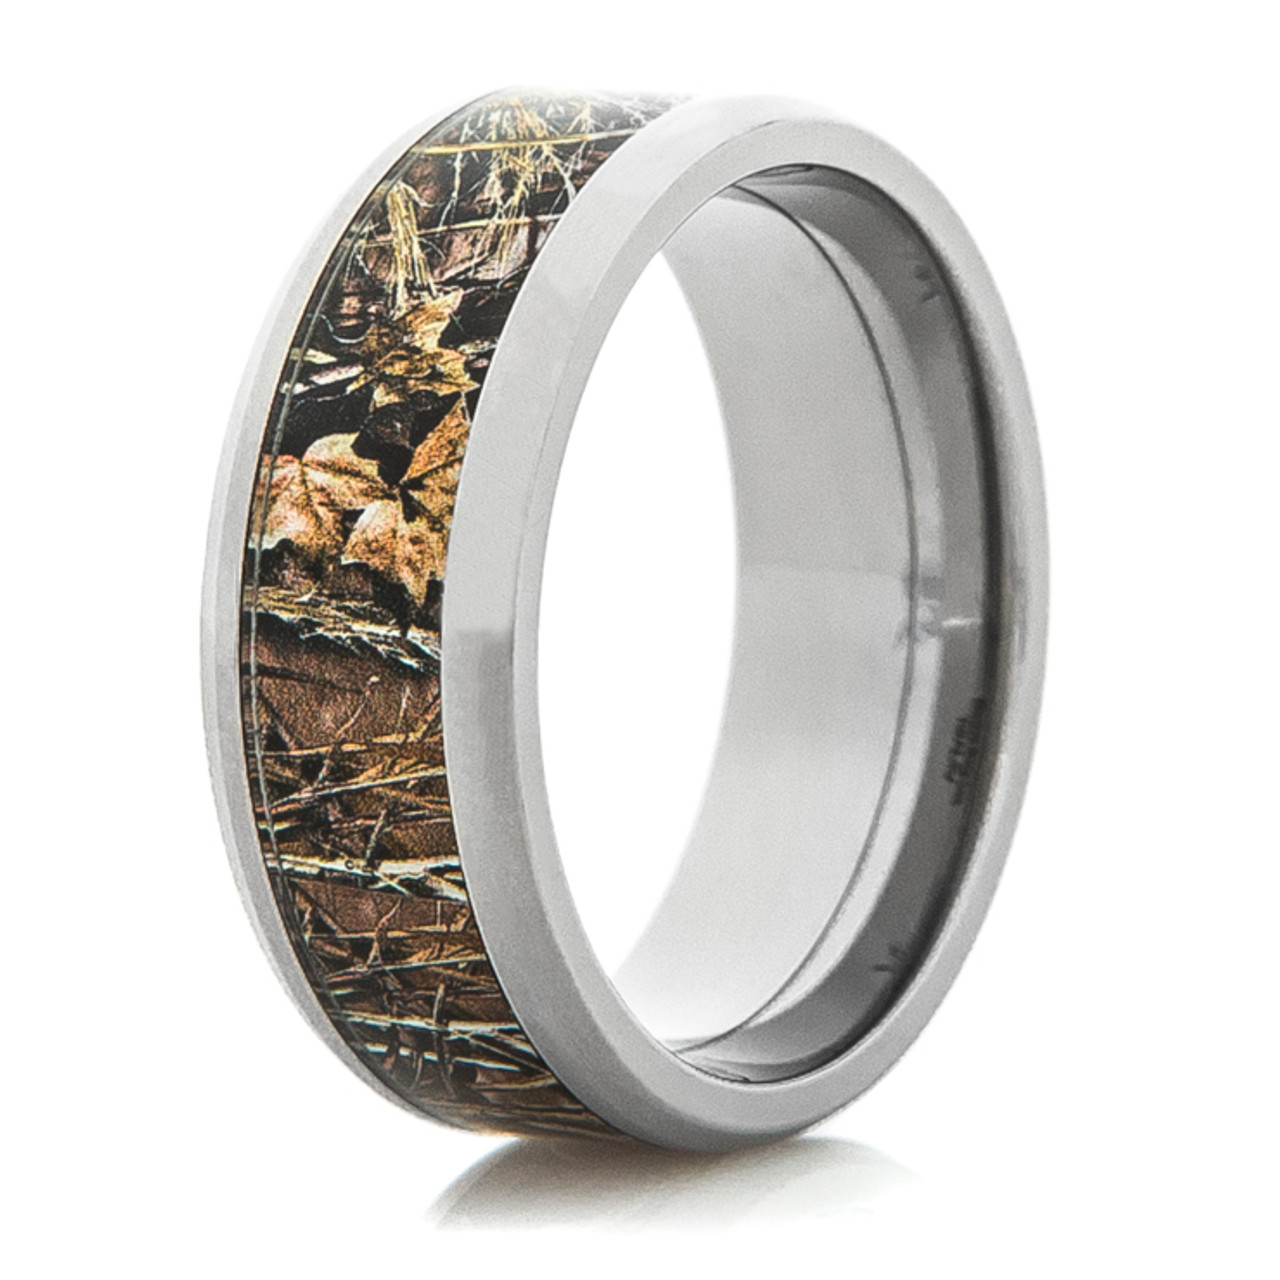 Realtree Titanium Max 4 Wedding Band Titanium Buzz